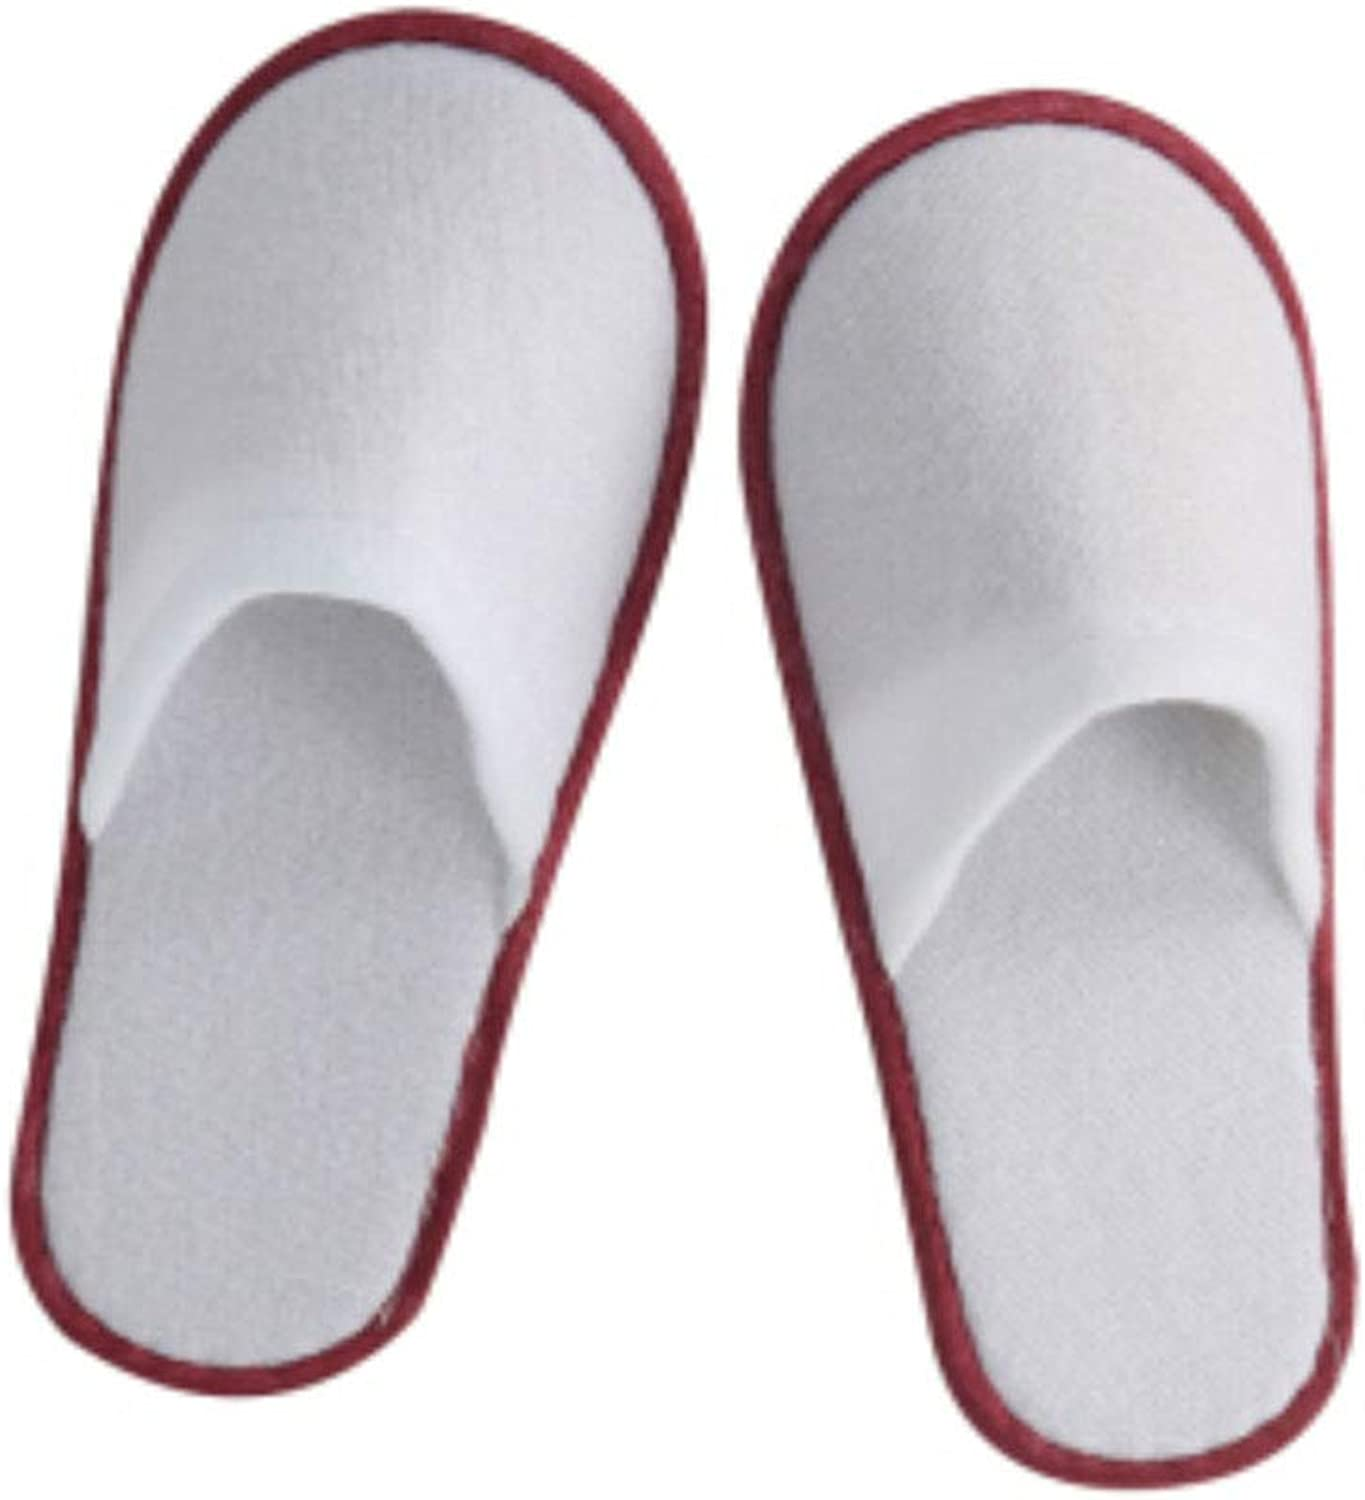 GZZ Disposable Slippers White 100 Pairs Summer Slippers Hotel Summer Slippers One-time Thickening Indoor Guests and Men's Household Red Suede Size 100 Pairs (color   White, Size   29.5  11.5cm)